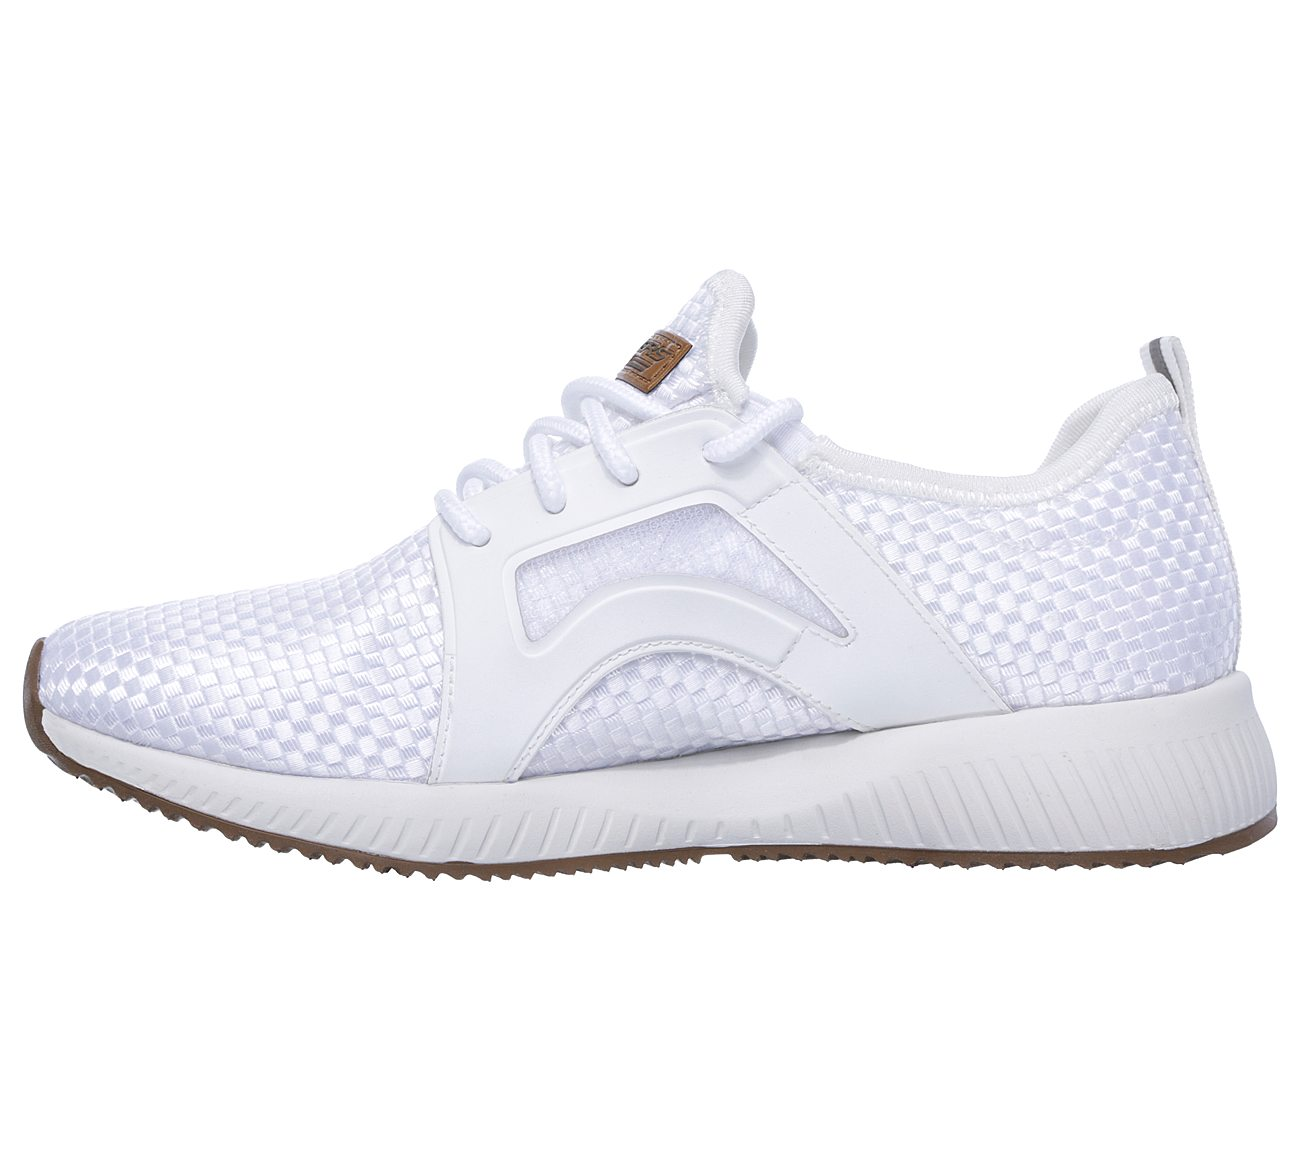 f9816c799ba5ff Buy SKECHERS BOBS Sport Squad - Insta Cool Bobs Shoes only 50